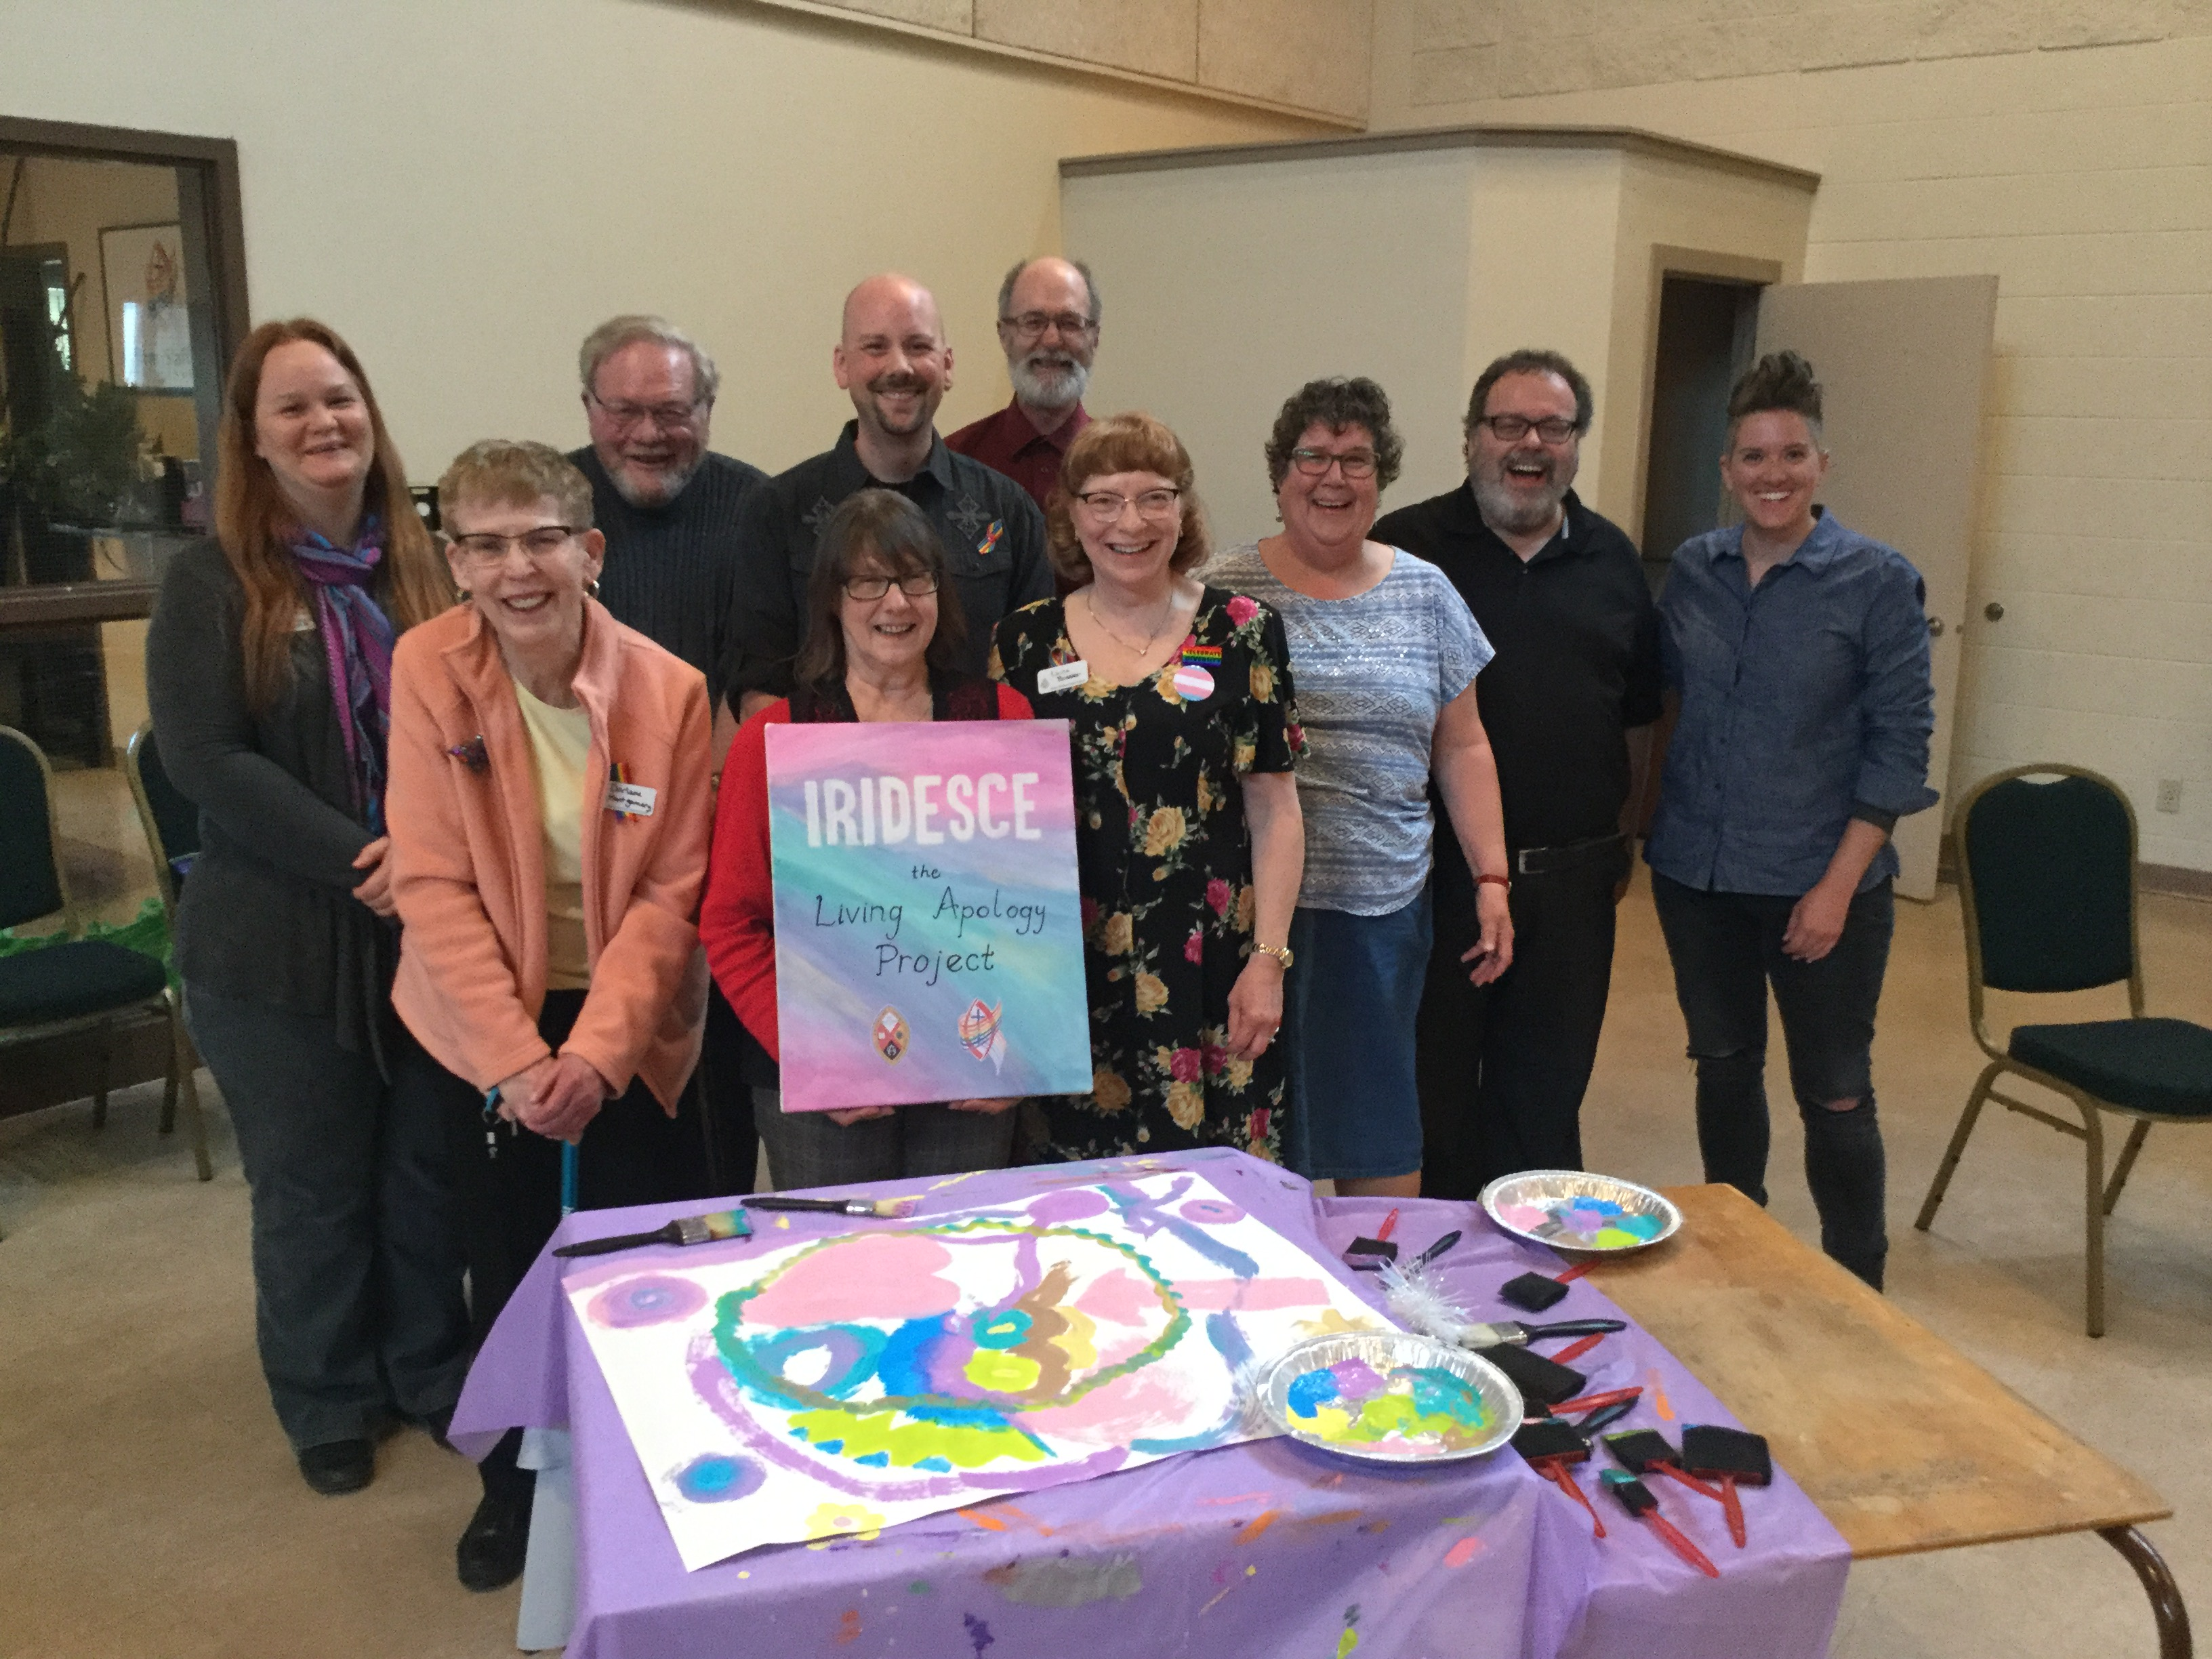 iridesce workshop hosted by McClure United Church Calgary